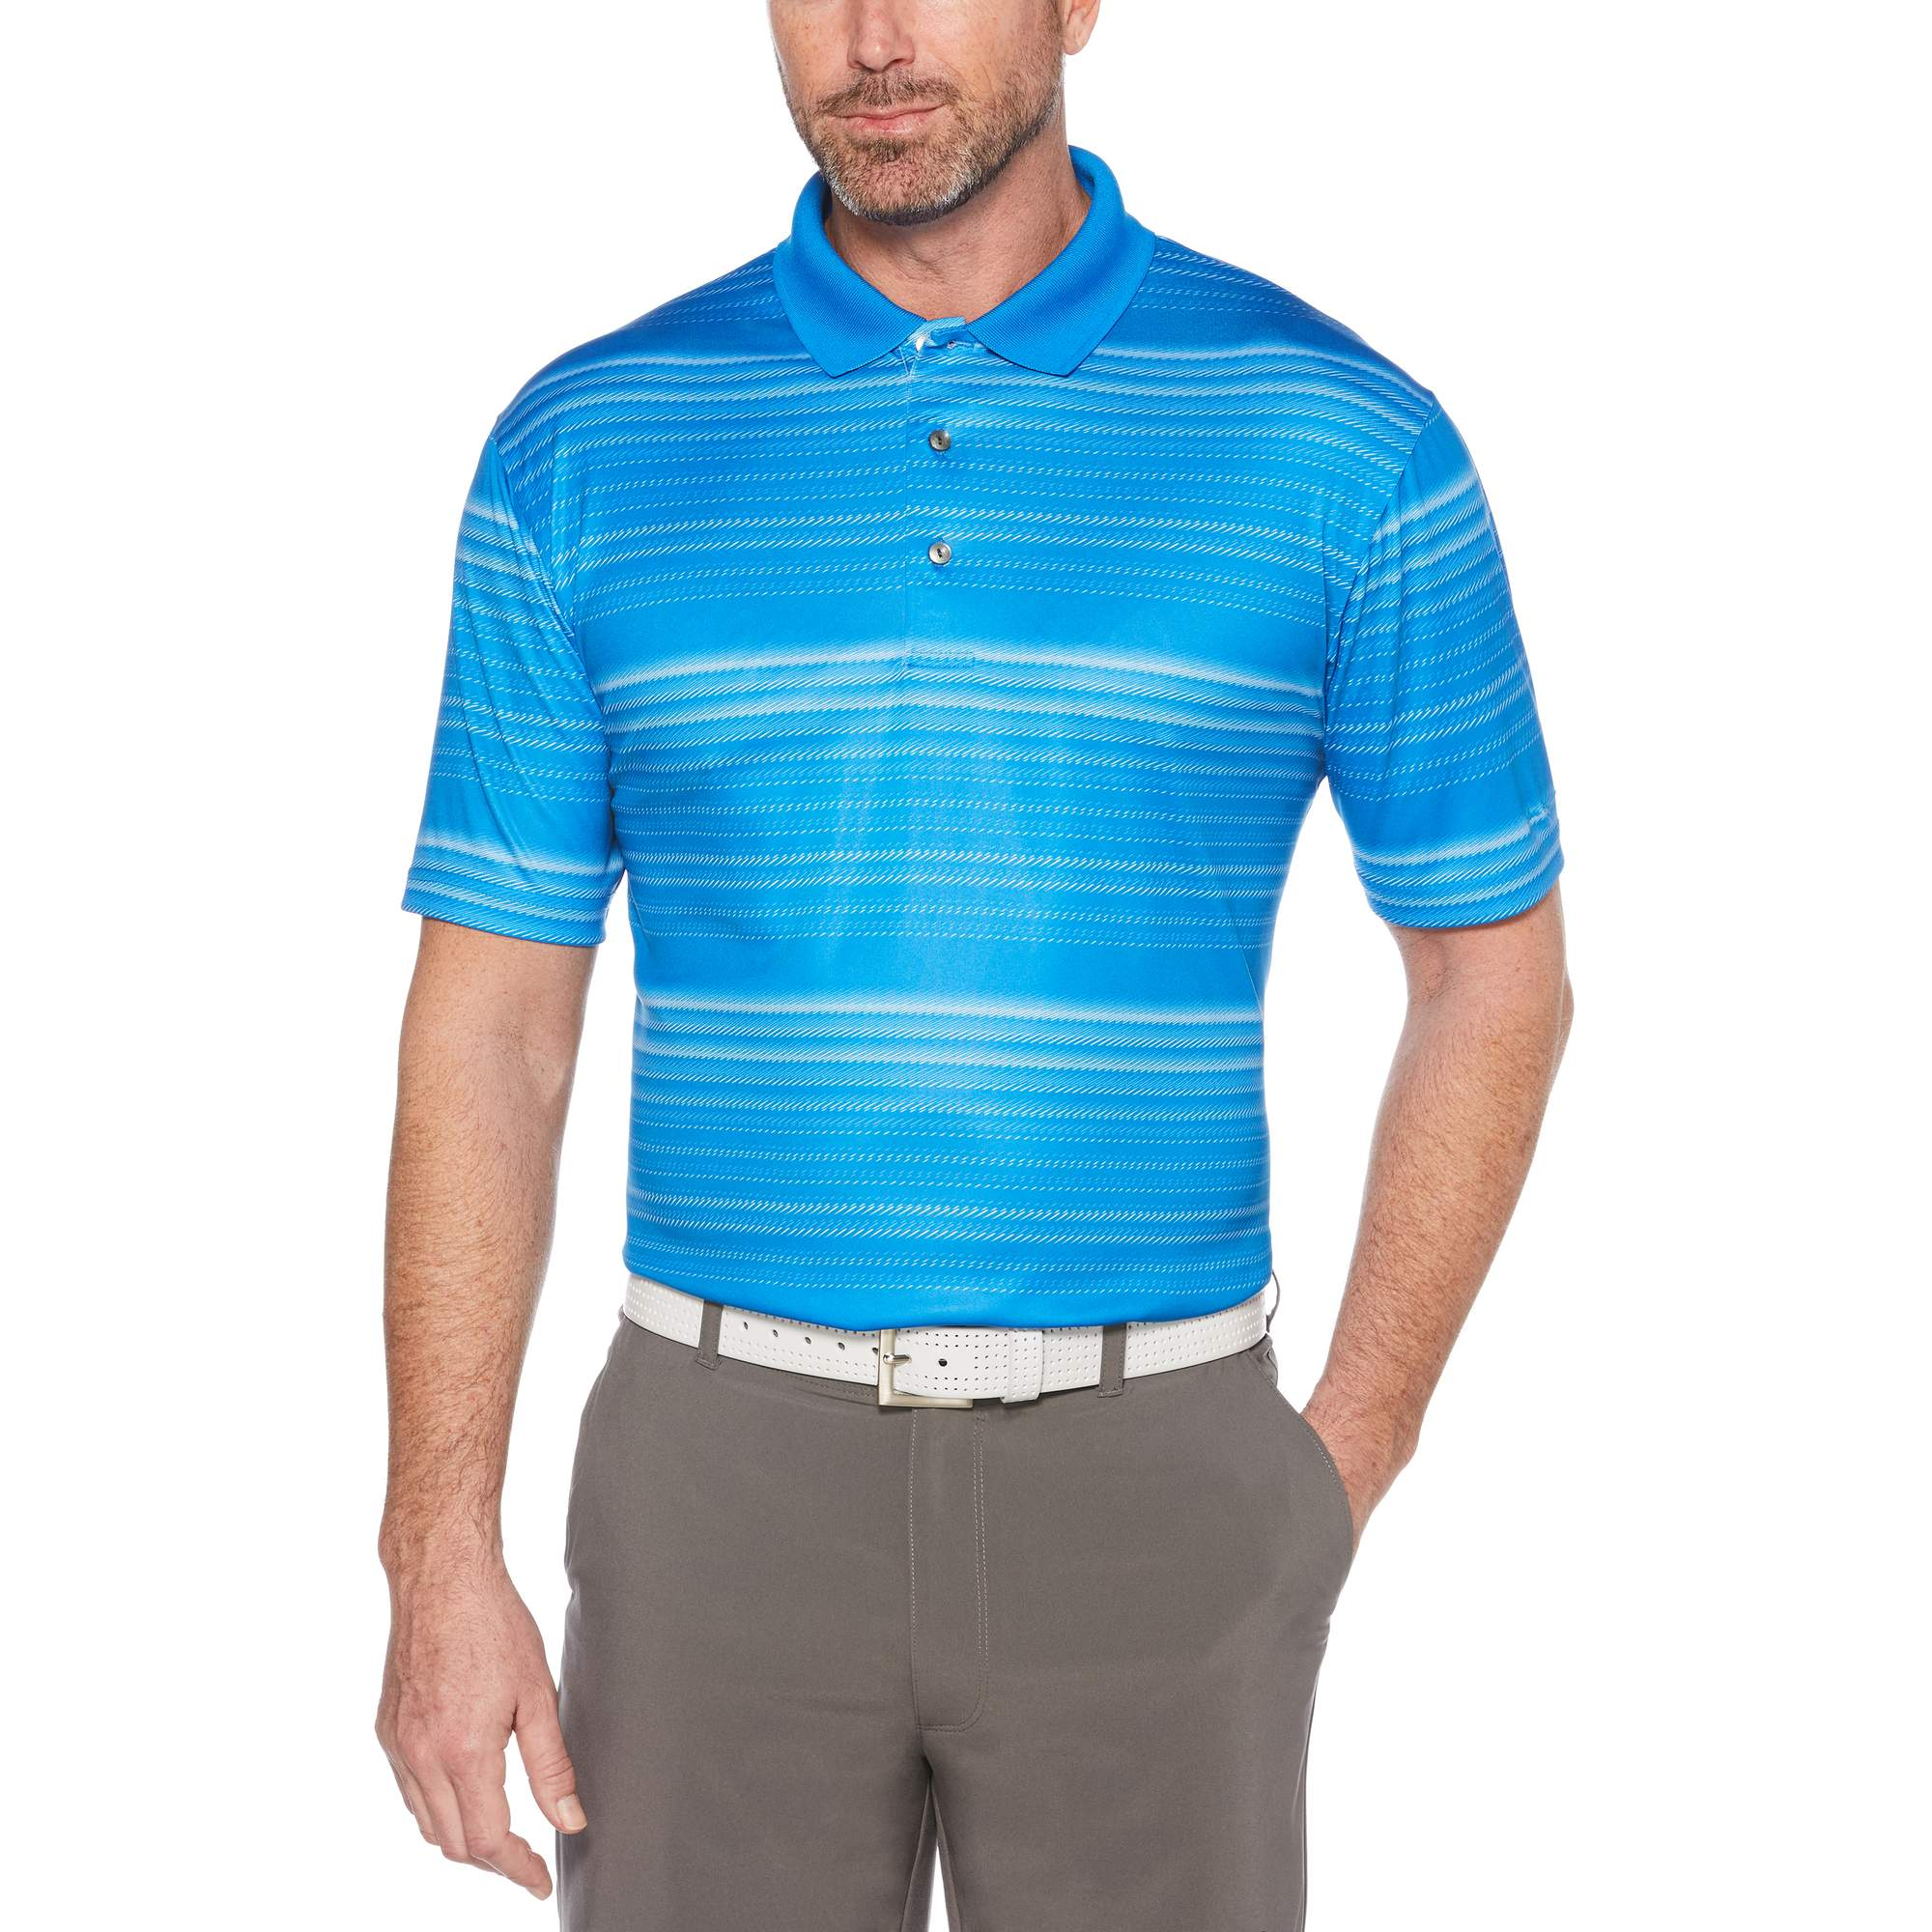 Men's Performance Short Sleeve Fading Stripe Polo Shirt, up to 5XL